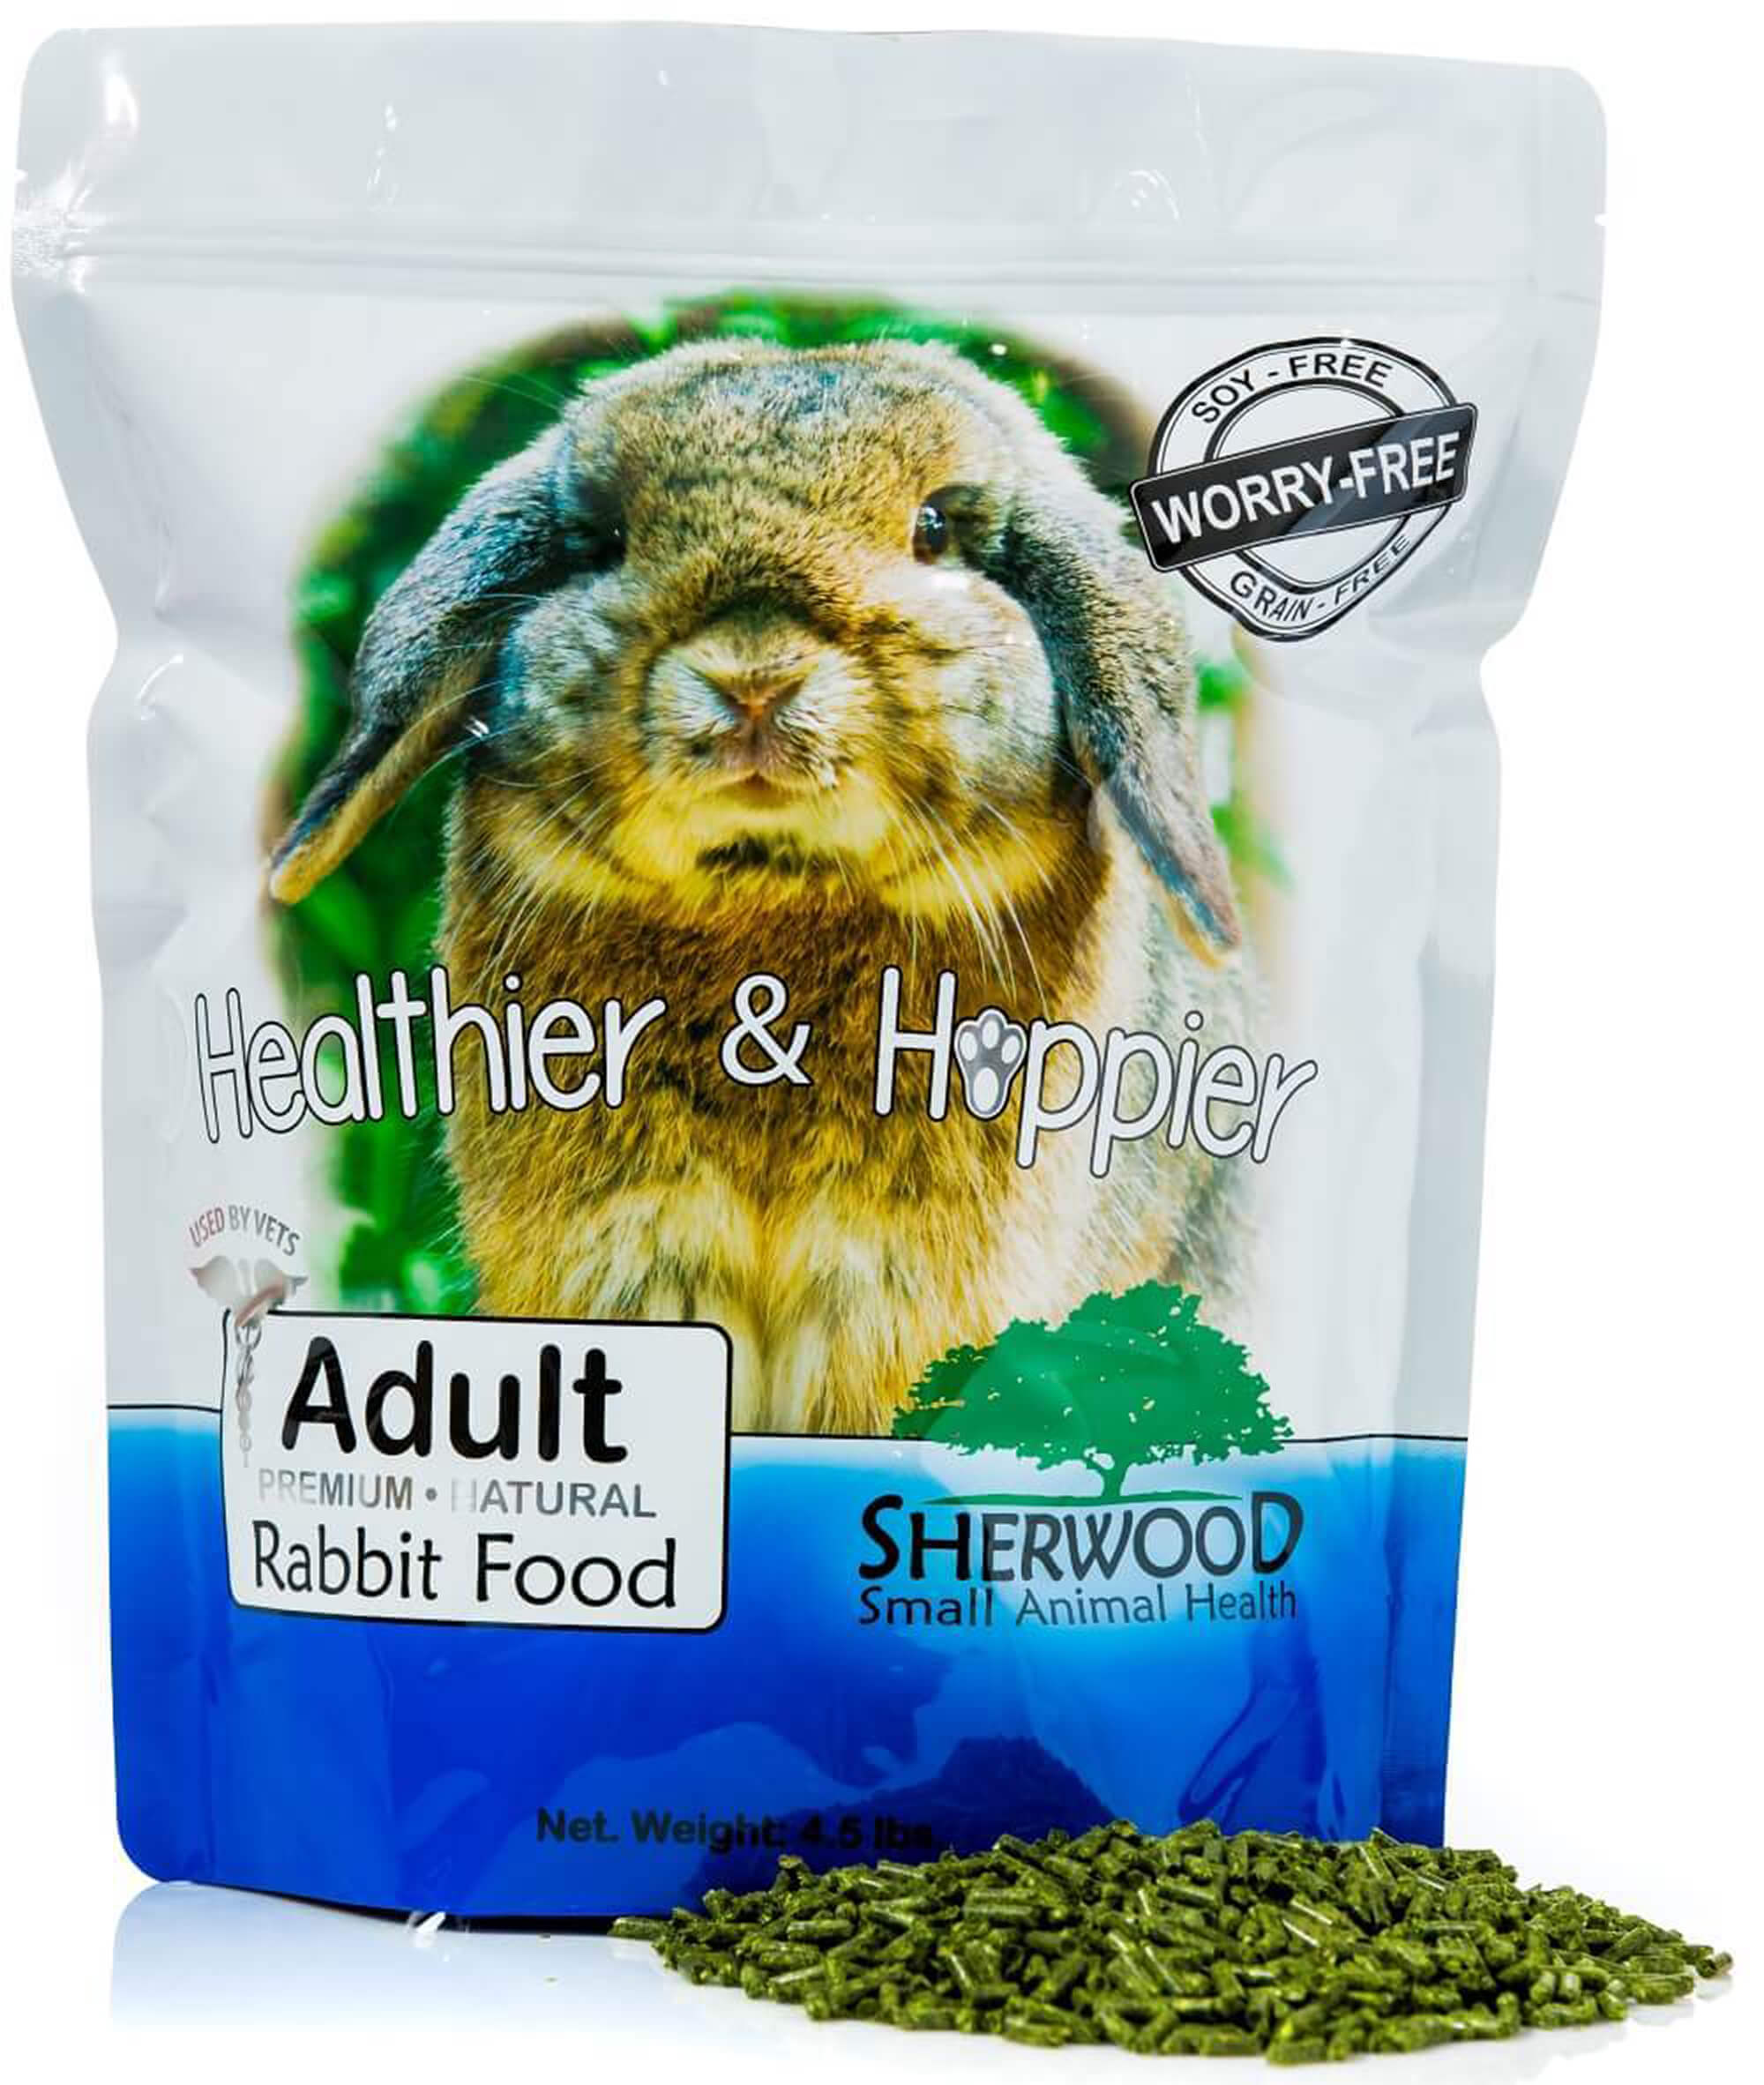 Rabbit Food, Sherwood Pet Health, Adult, Timothy blend (Grain & Soy-Free) (Vet Used) 4.5# by Sherwood Pet Heath